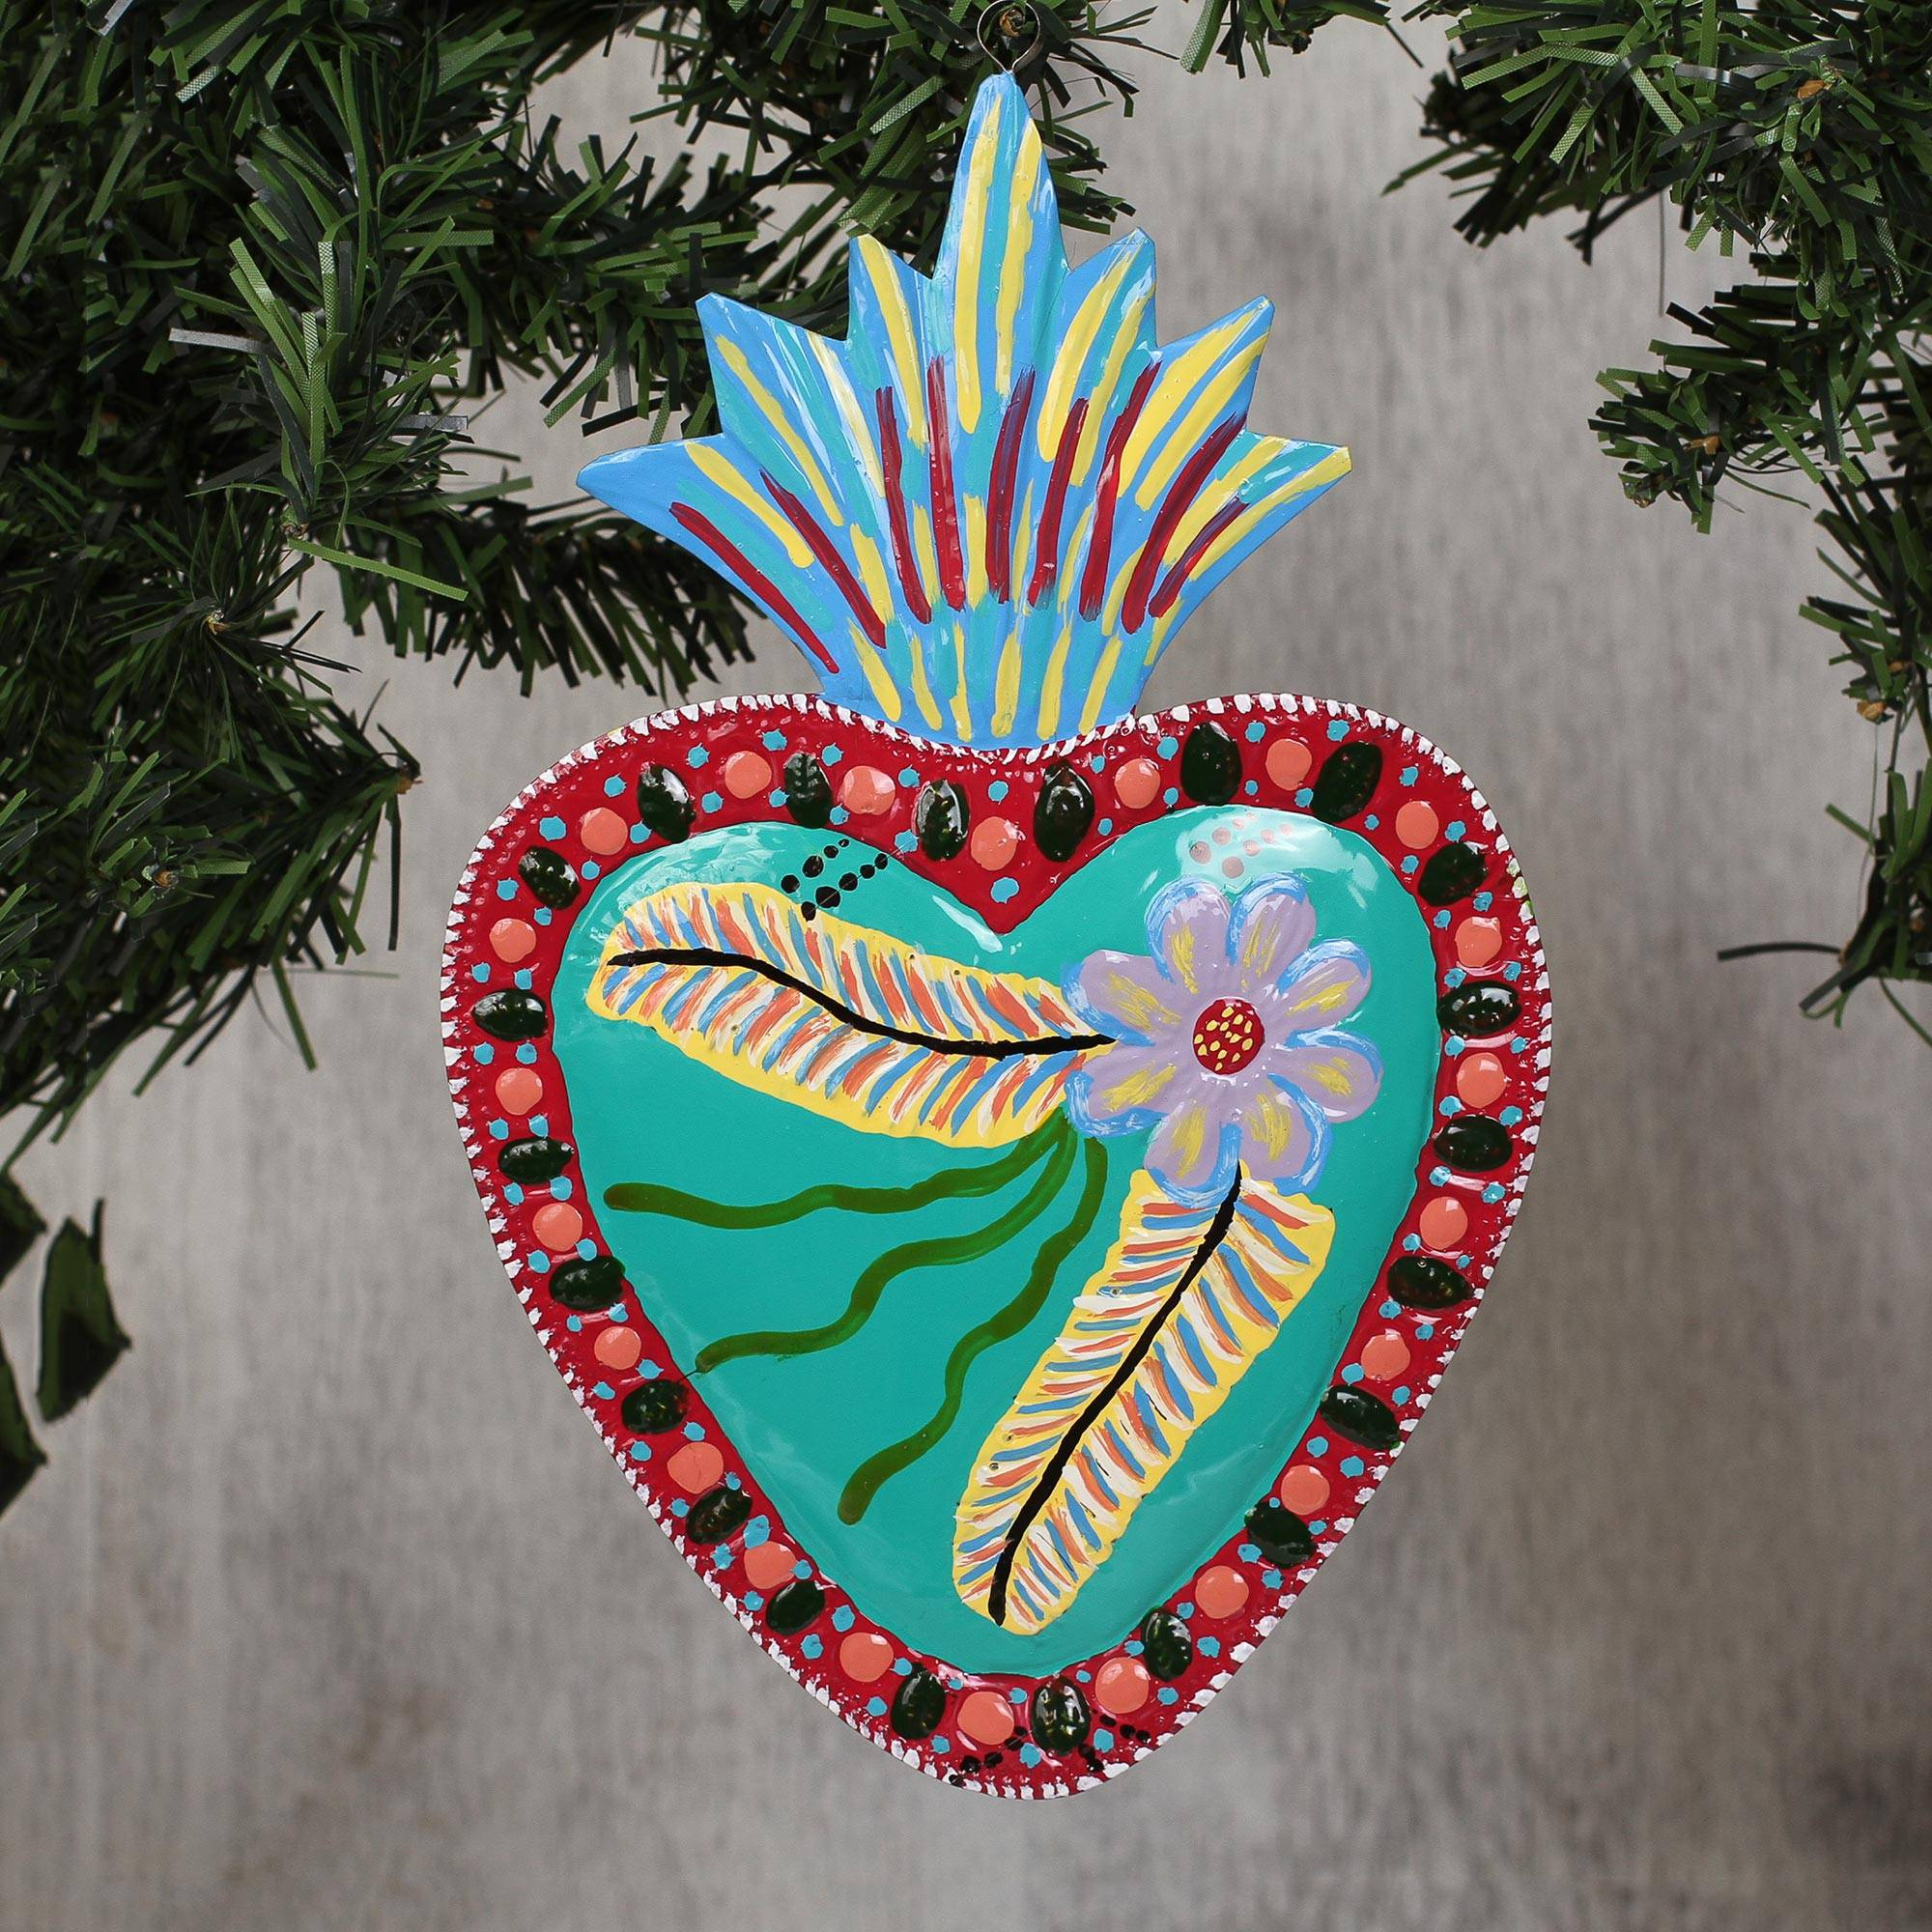 Floral Heart Shaped Colorful Tin Wall Art From Mexico, 'cheerful Heart' Throughout 2 Piece Heart Shaped Fan Wall Decor Sets (View 13 of 30)